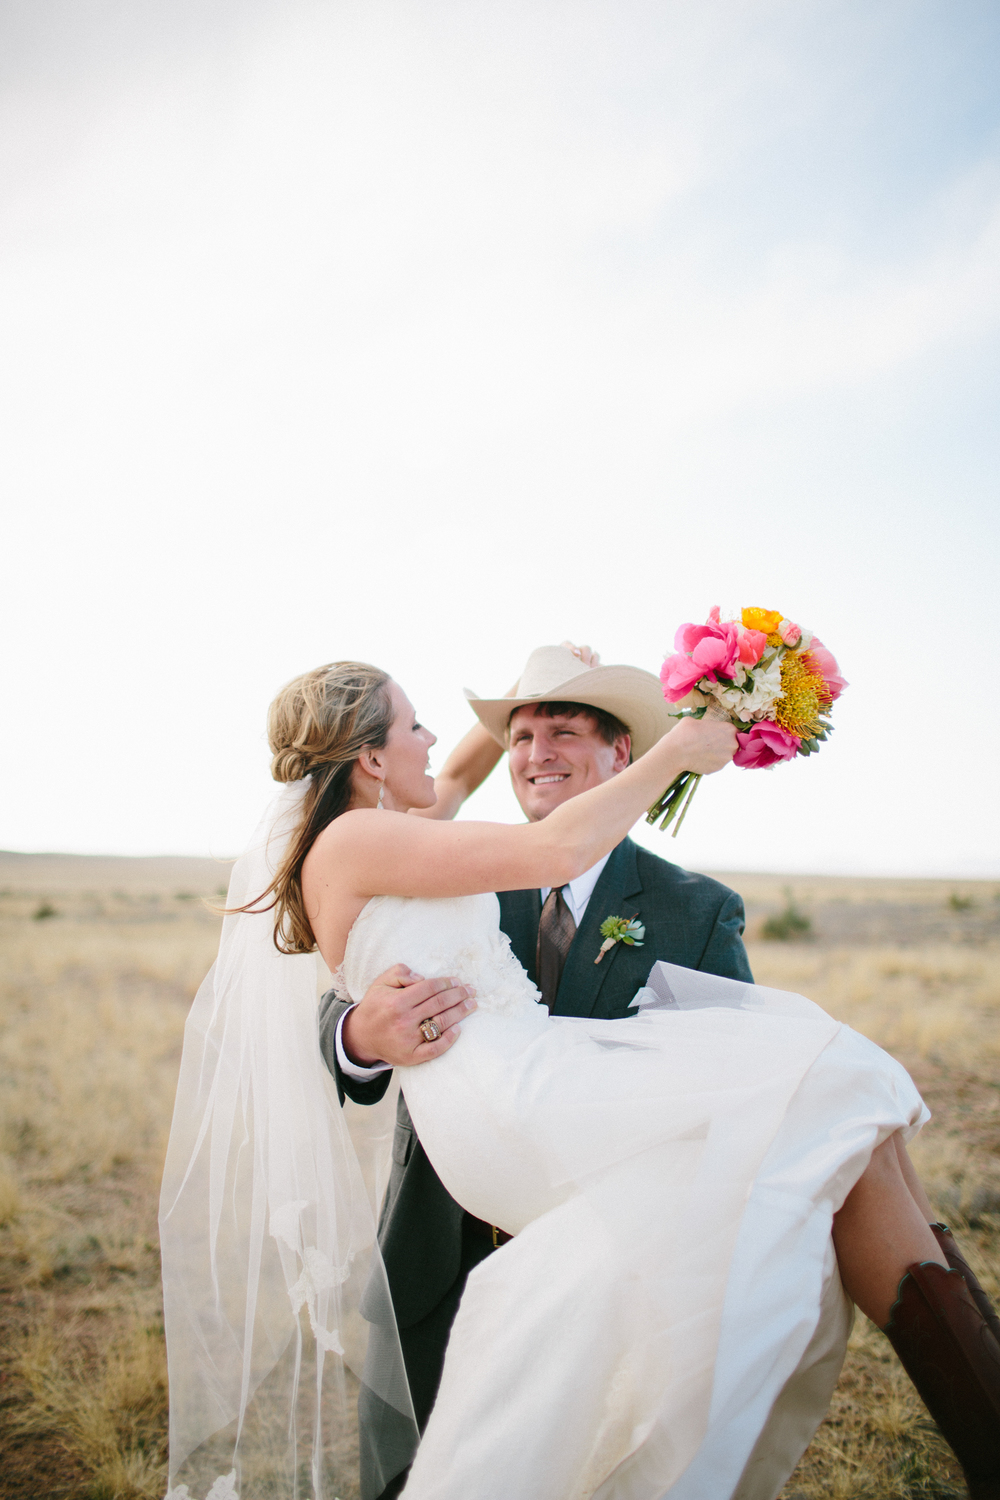 Megan_Rich_Marfa_Wedding00019.jpg